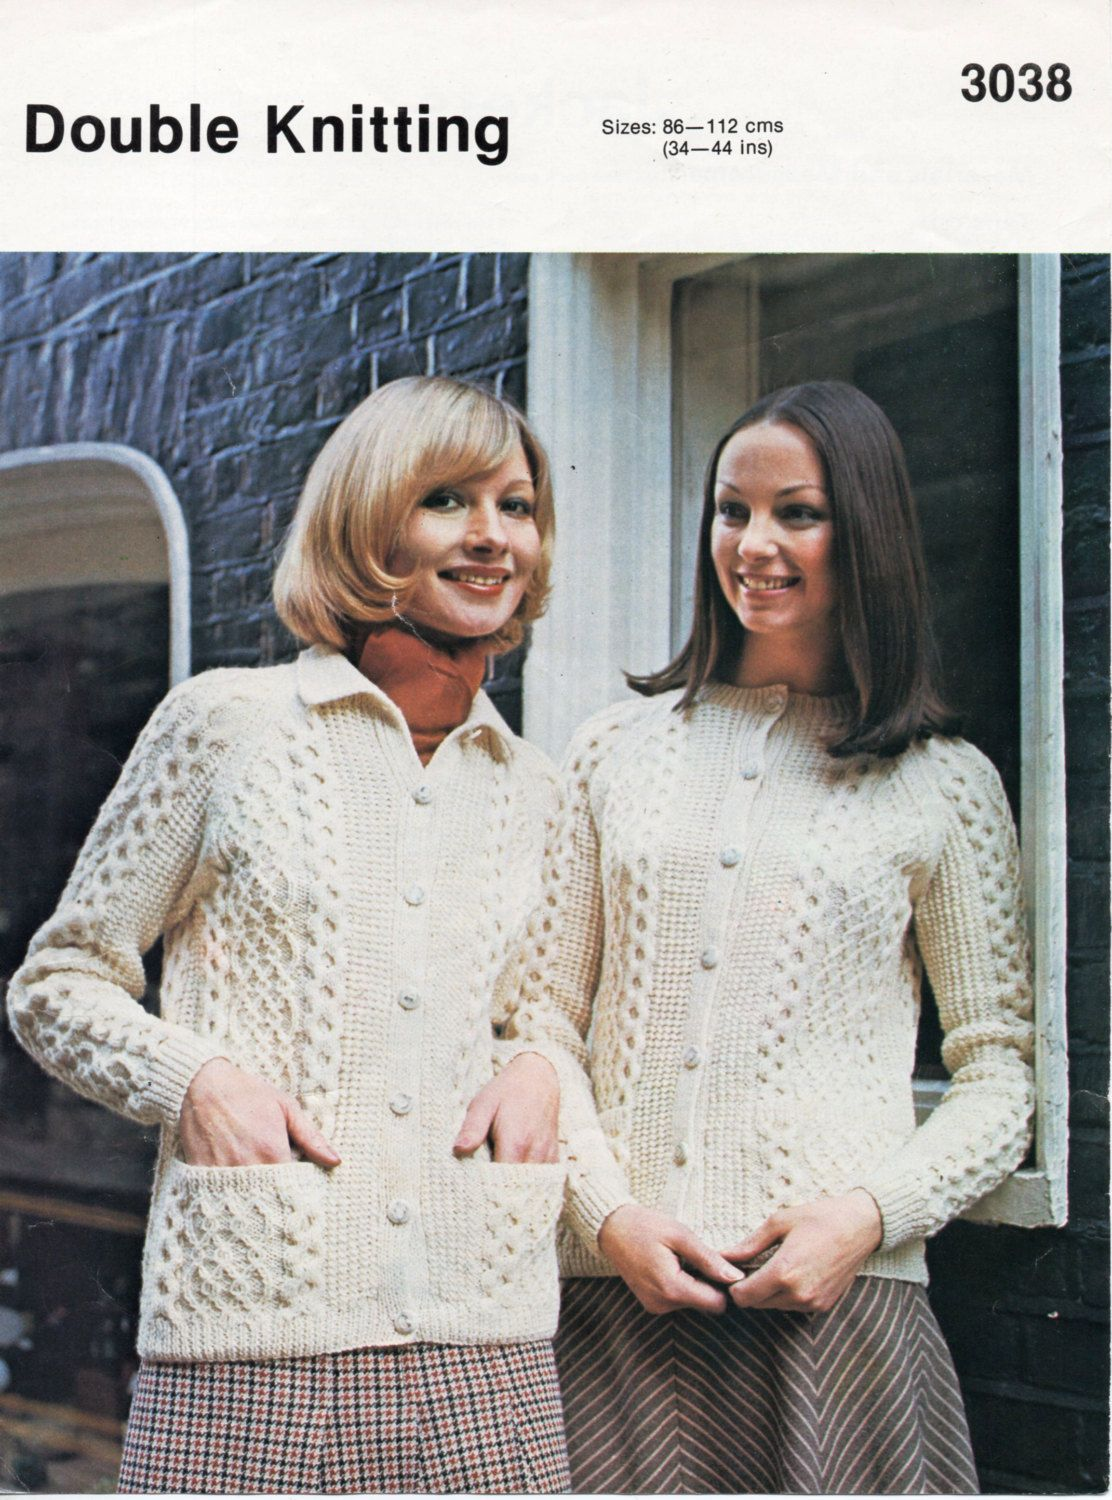 b667fe1b97ff womens cable cardigans knitting pattern aran style jacket with collar 1970s  34-44 inch DK womens knitting pattern pdf instant download by Hobohooks on  Etsy